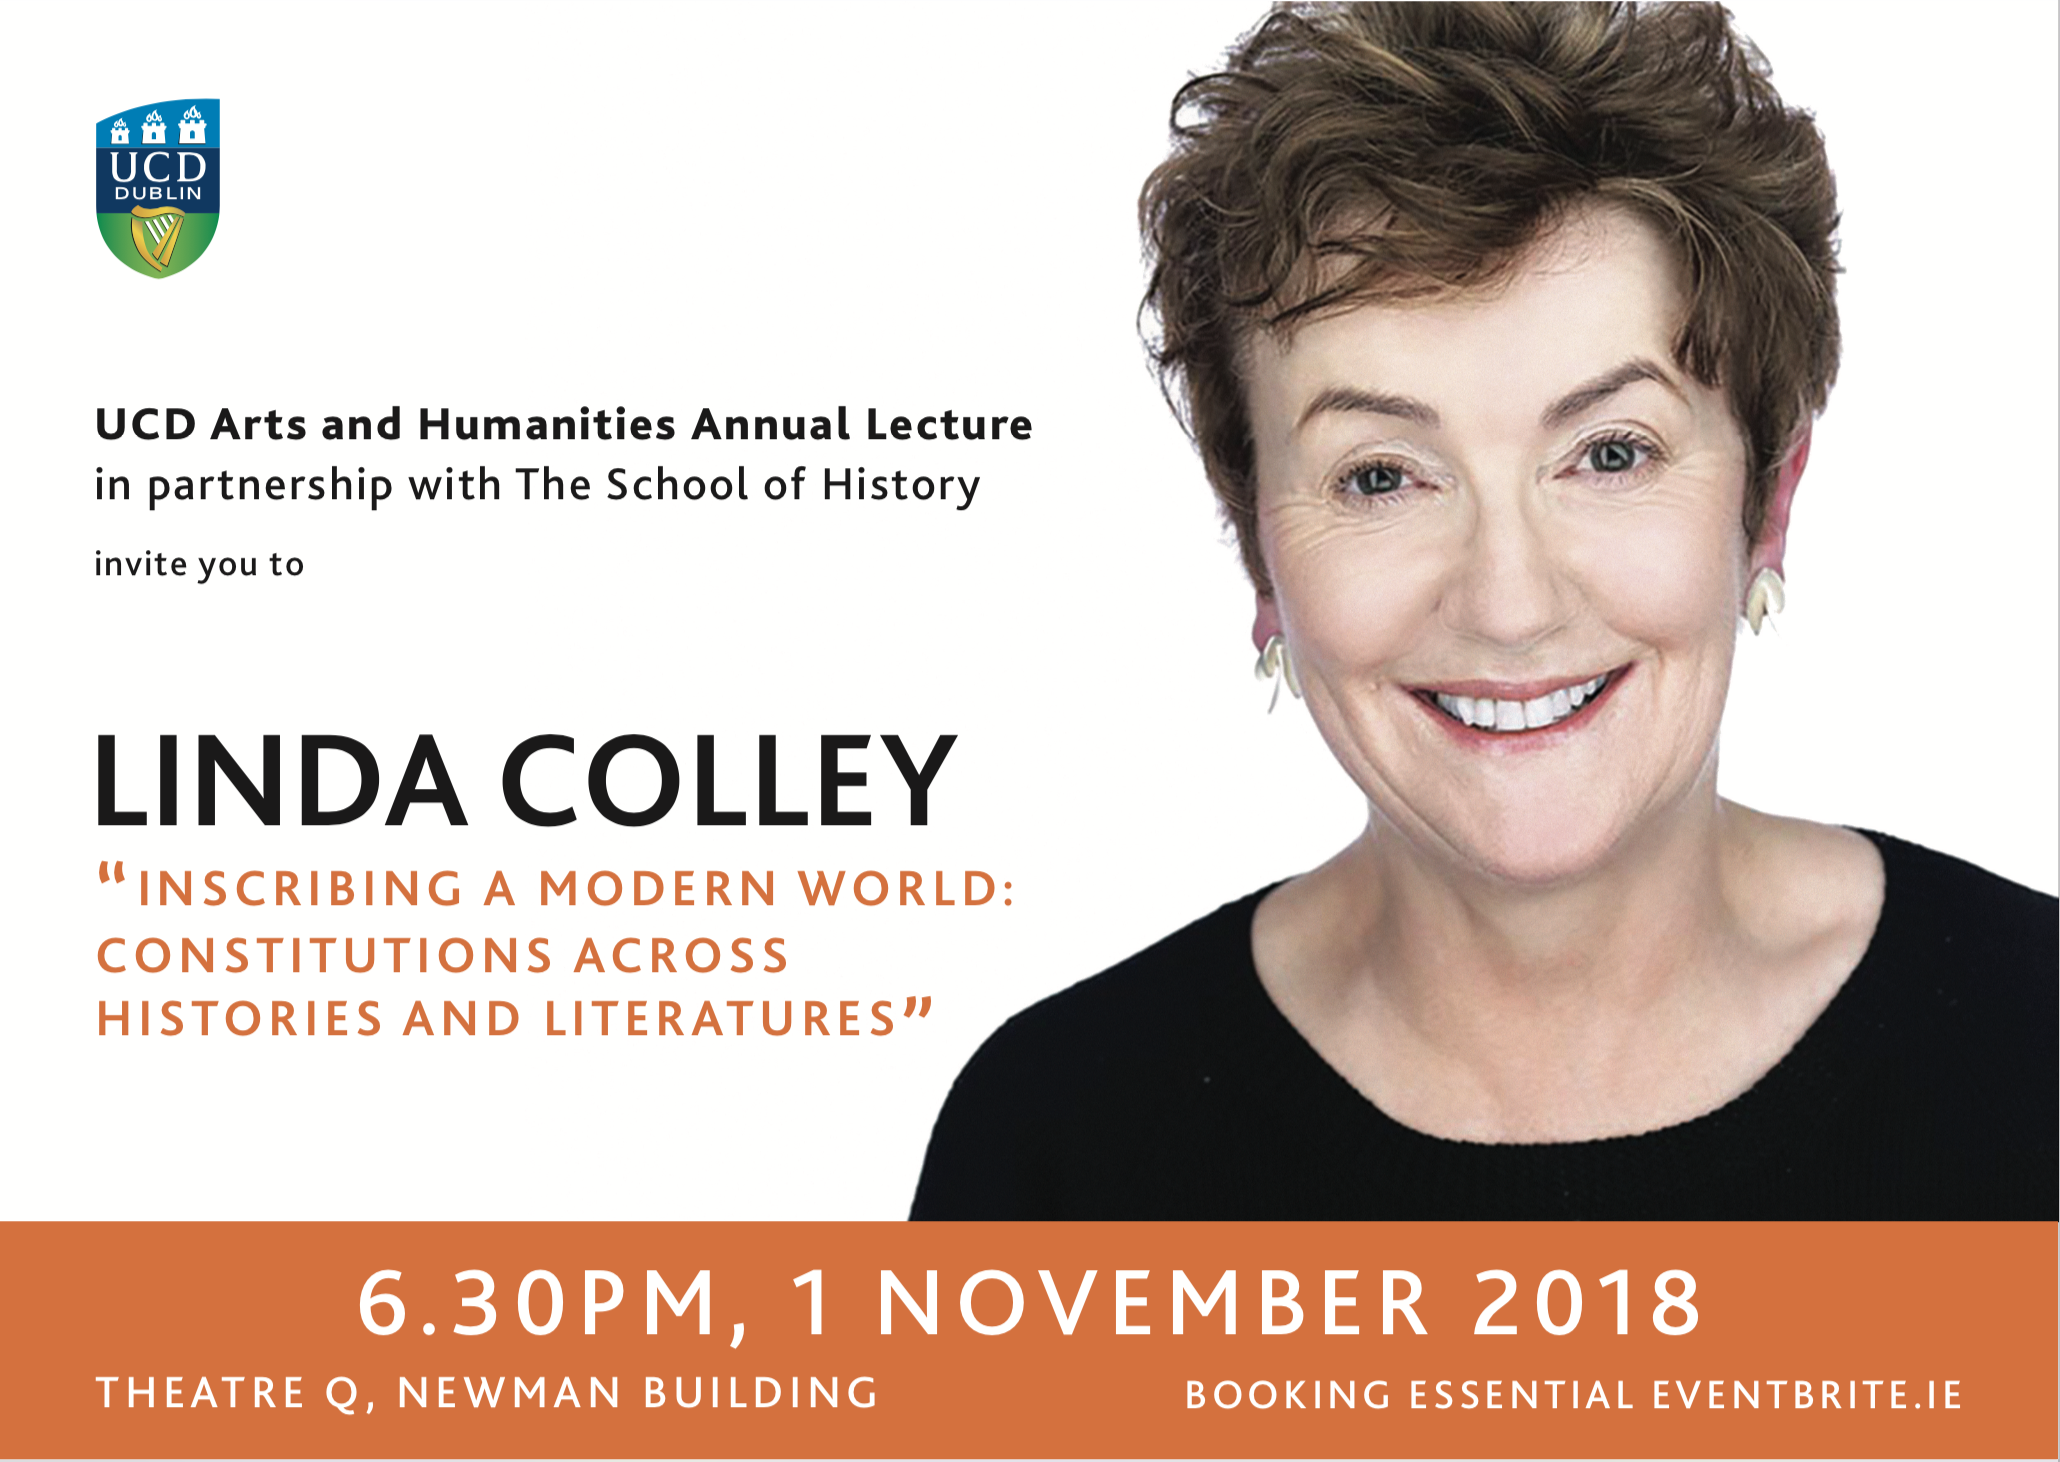 """Linda Colley: """"Inscribing a Modern World: Constitutions Across Histories and Literatures"""" poster"""